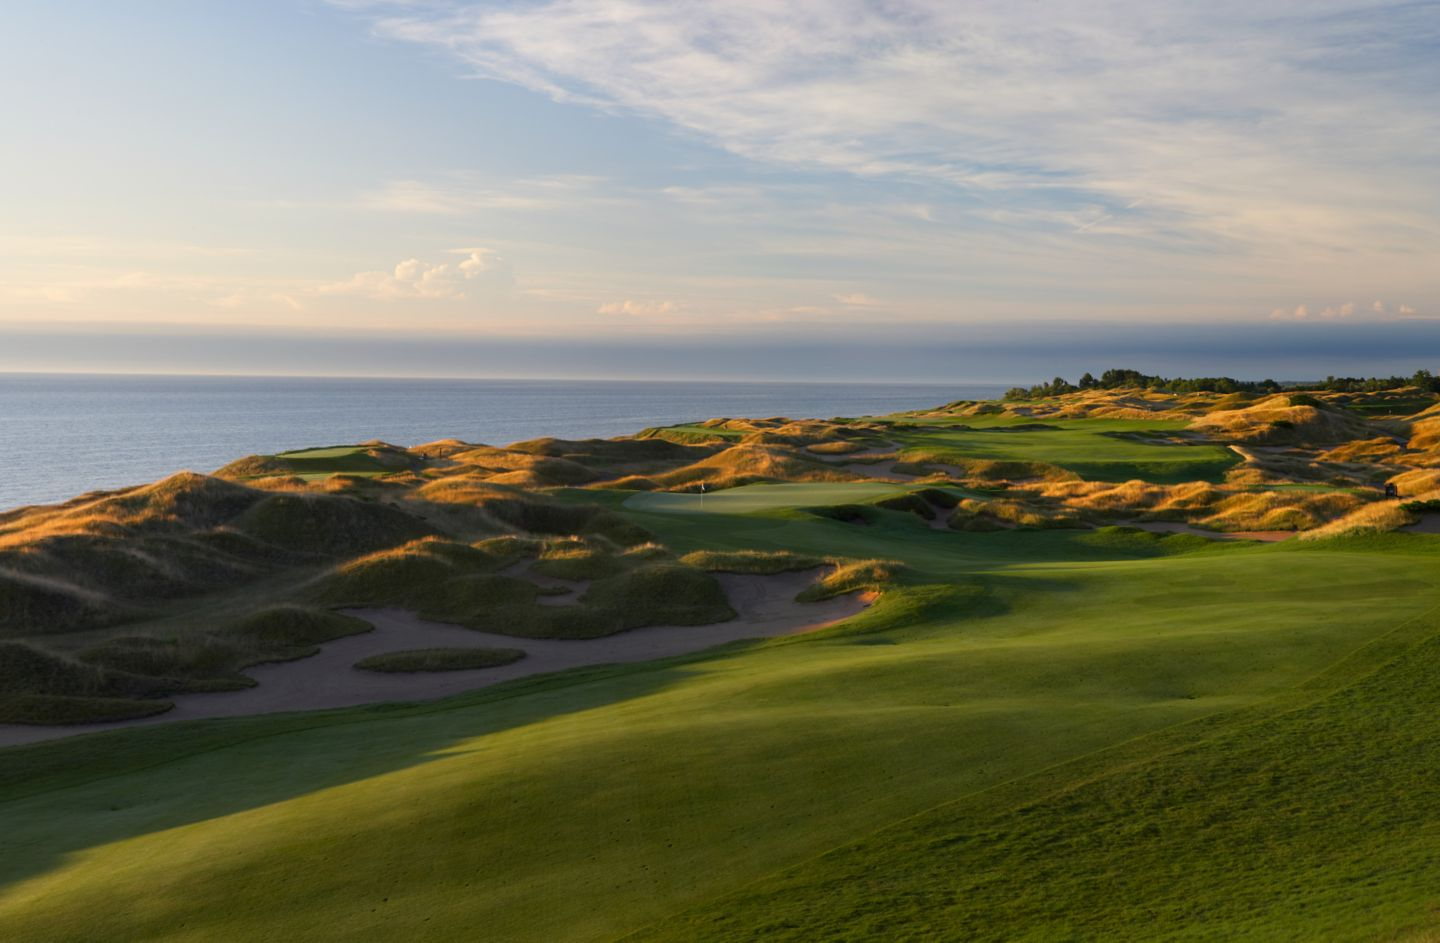 Hole 14 on Straits Course at Whistling Straits